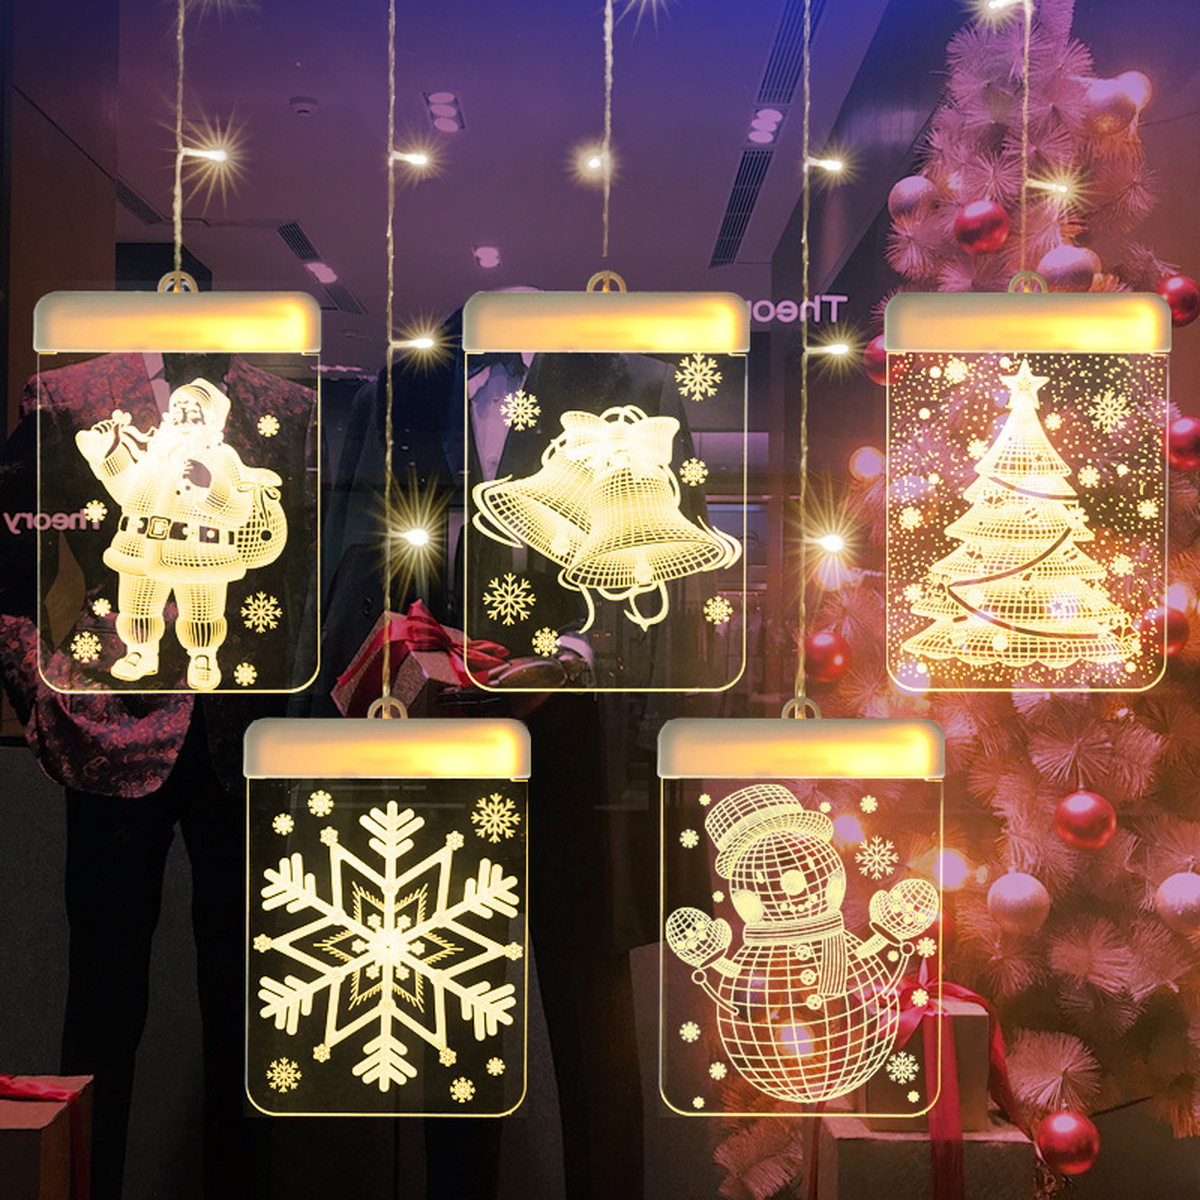 3D Christmas LED Holiday Fairy Lights USB Santa Claus Bell Snowflake Snowman Decoration String Light for Home Garland Window